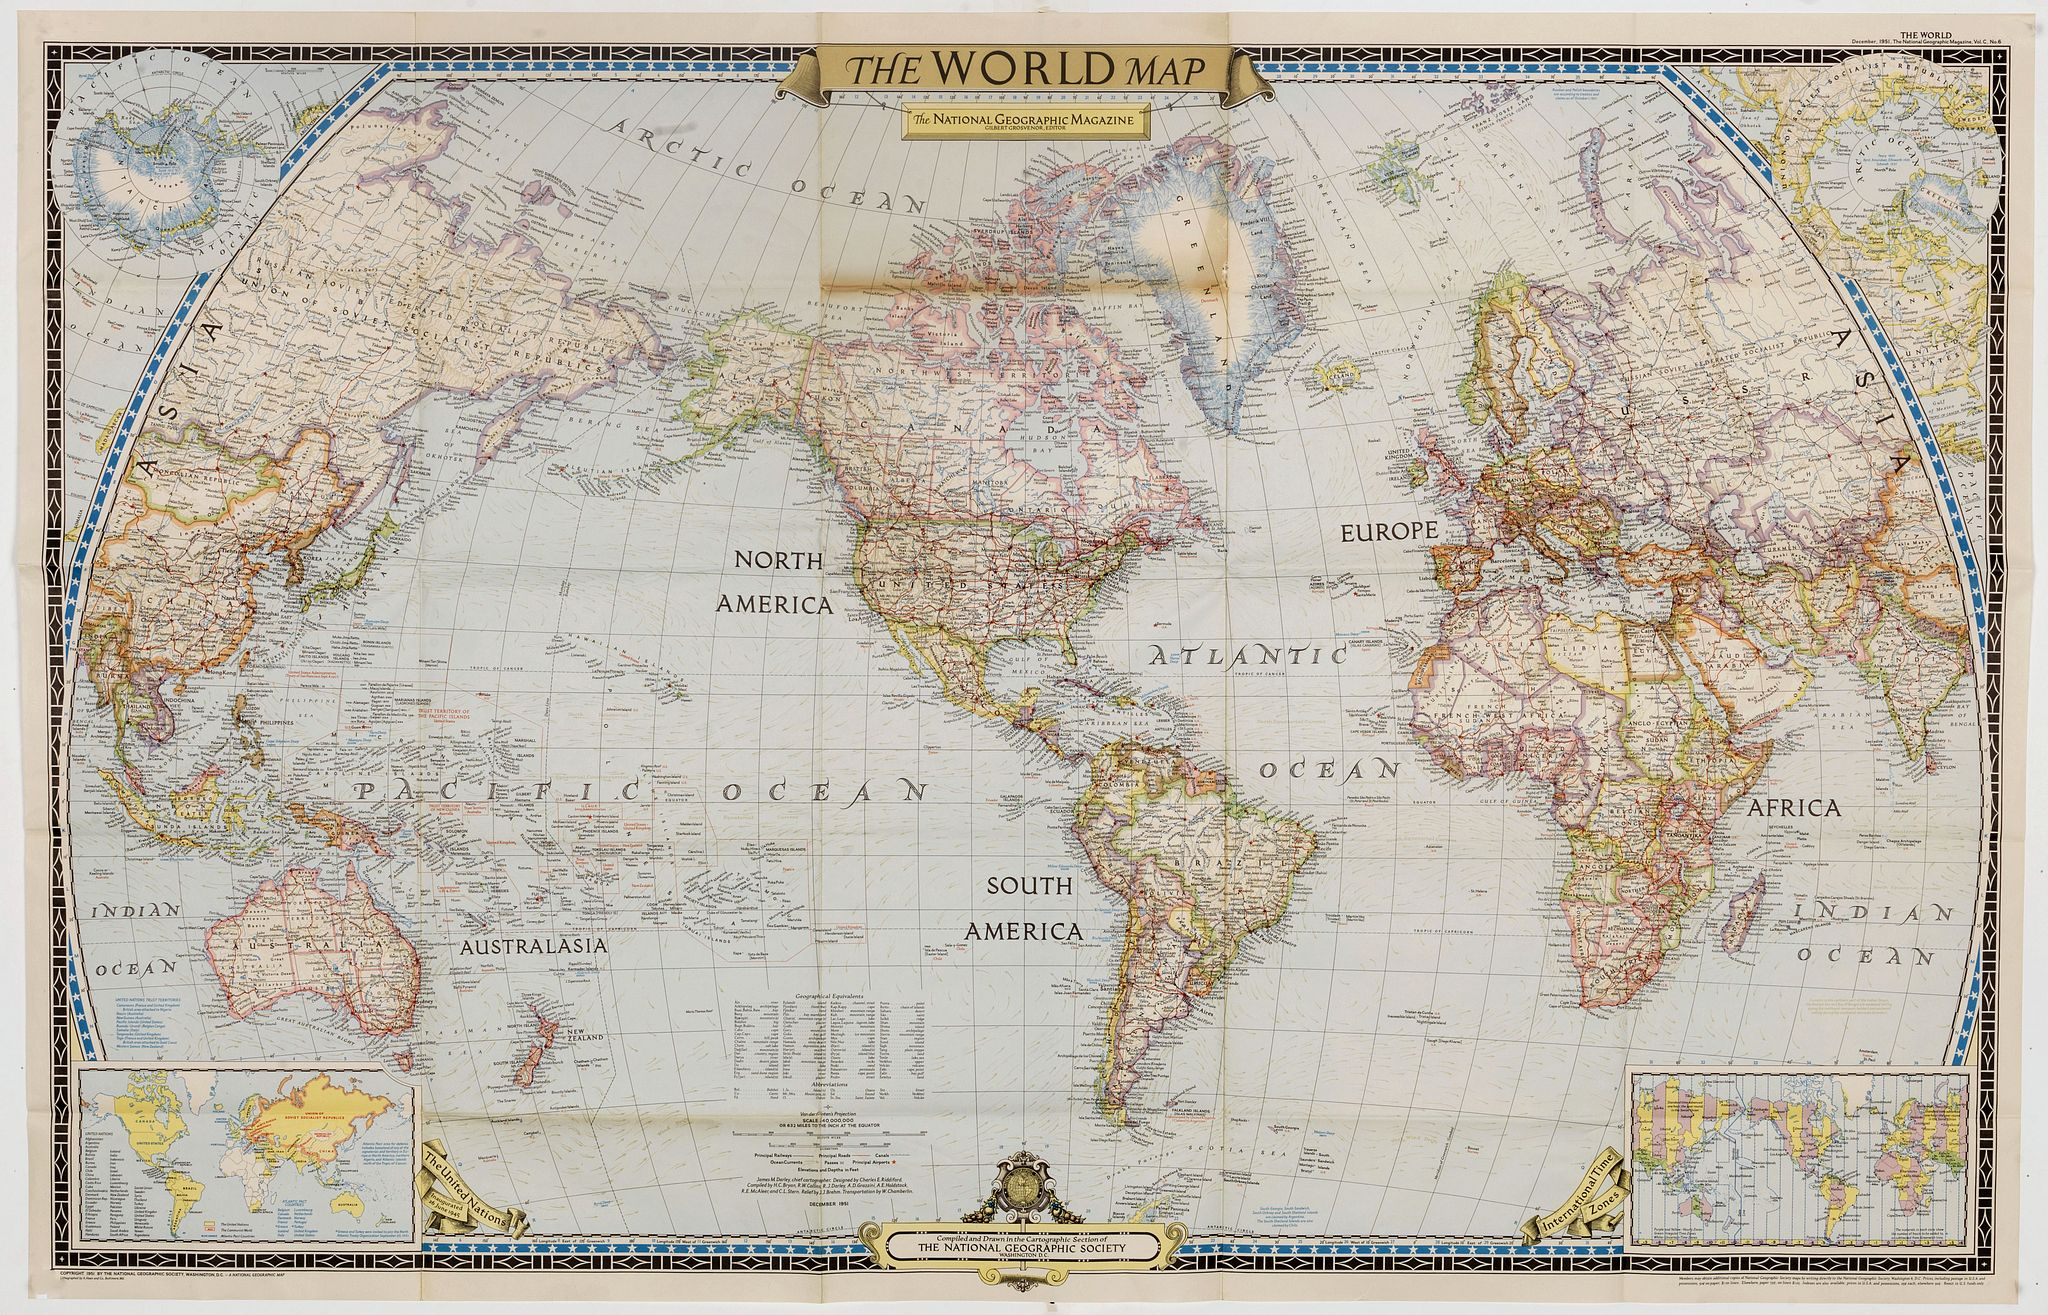 NATIONAL GEOGRAPHIC SOCIETY -  The World Map.